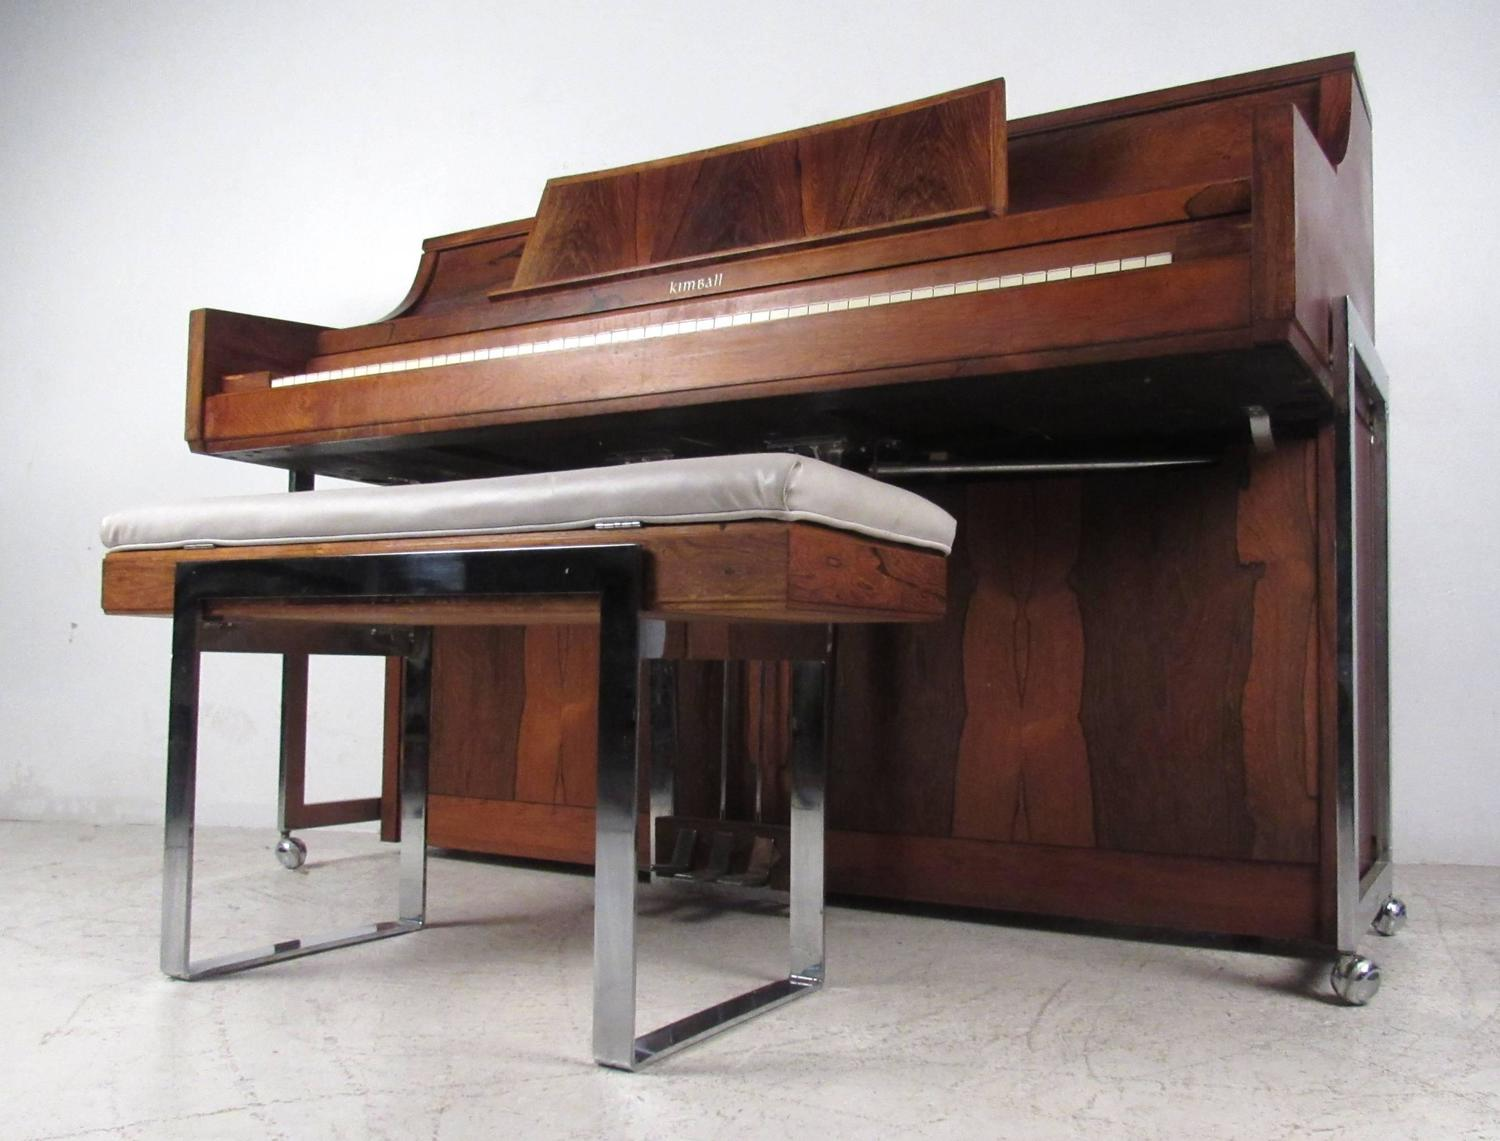 Exquisite Midcentury Rosewood Piano By Kimball For Sale At 1stdibs